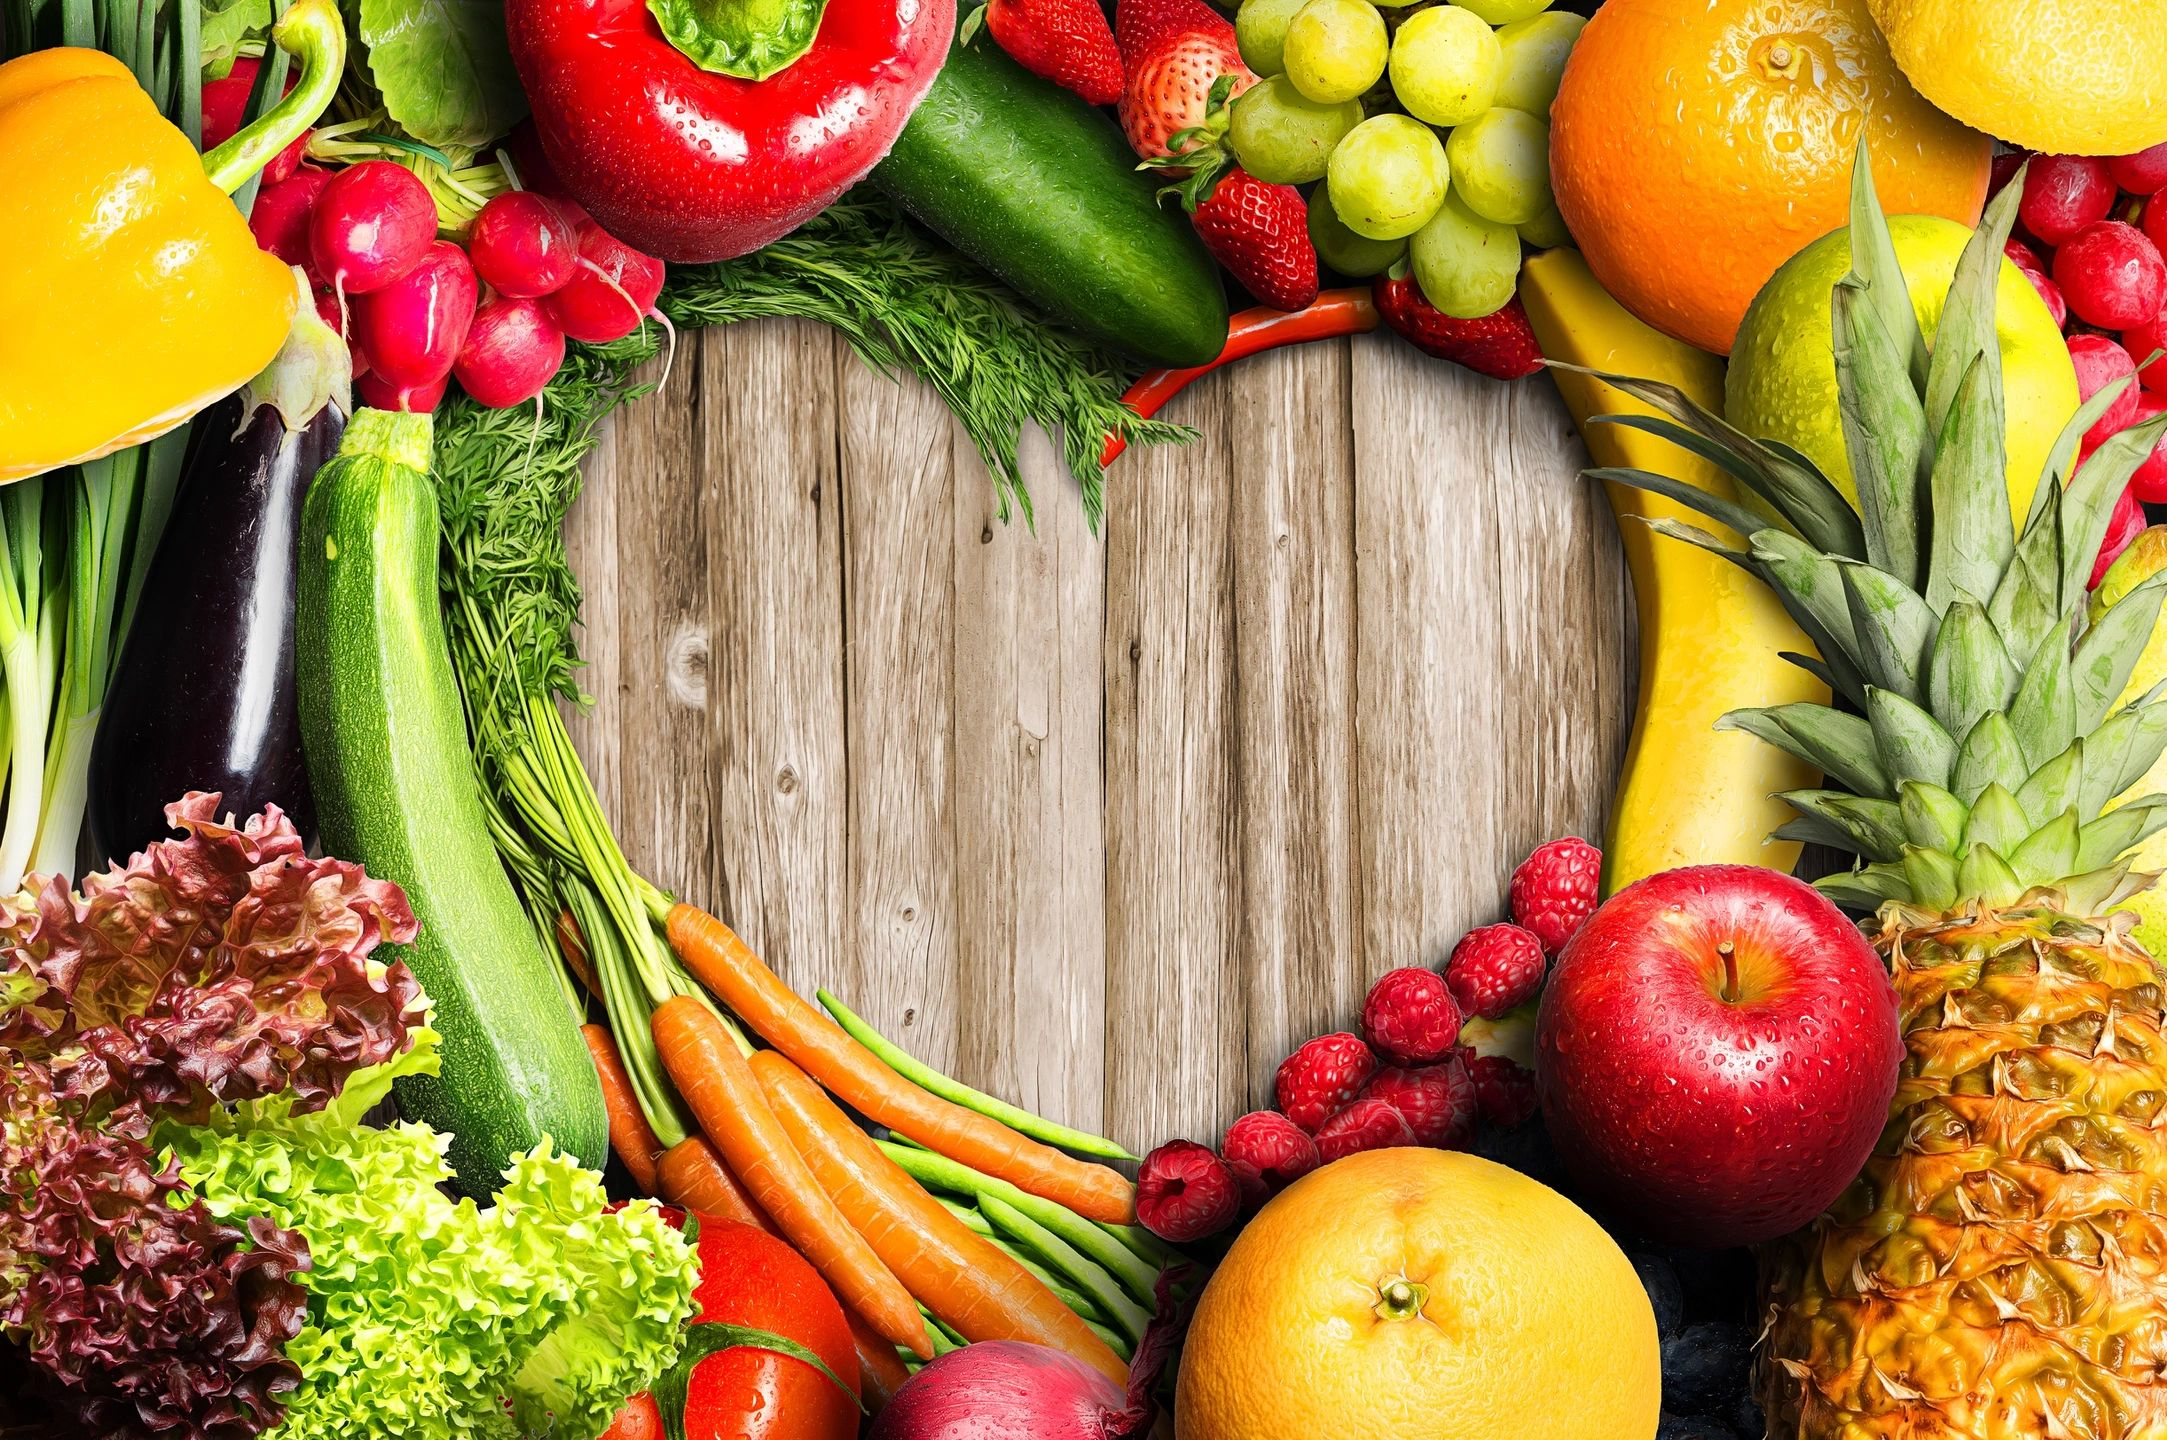 Finding the Best Locations for Healthy Foods